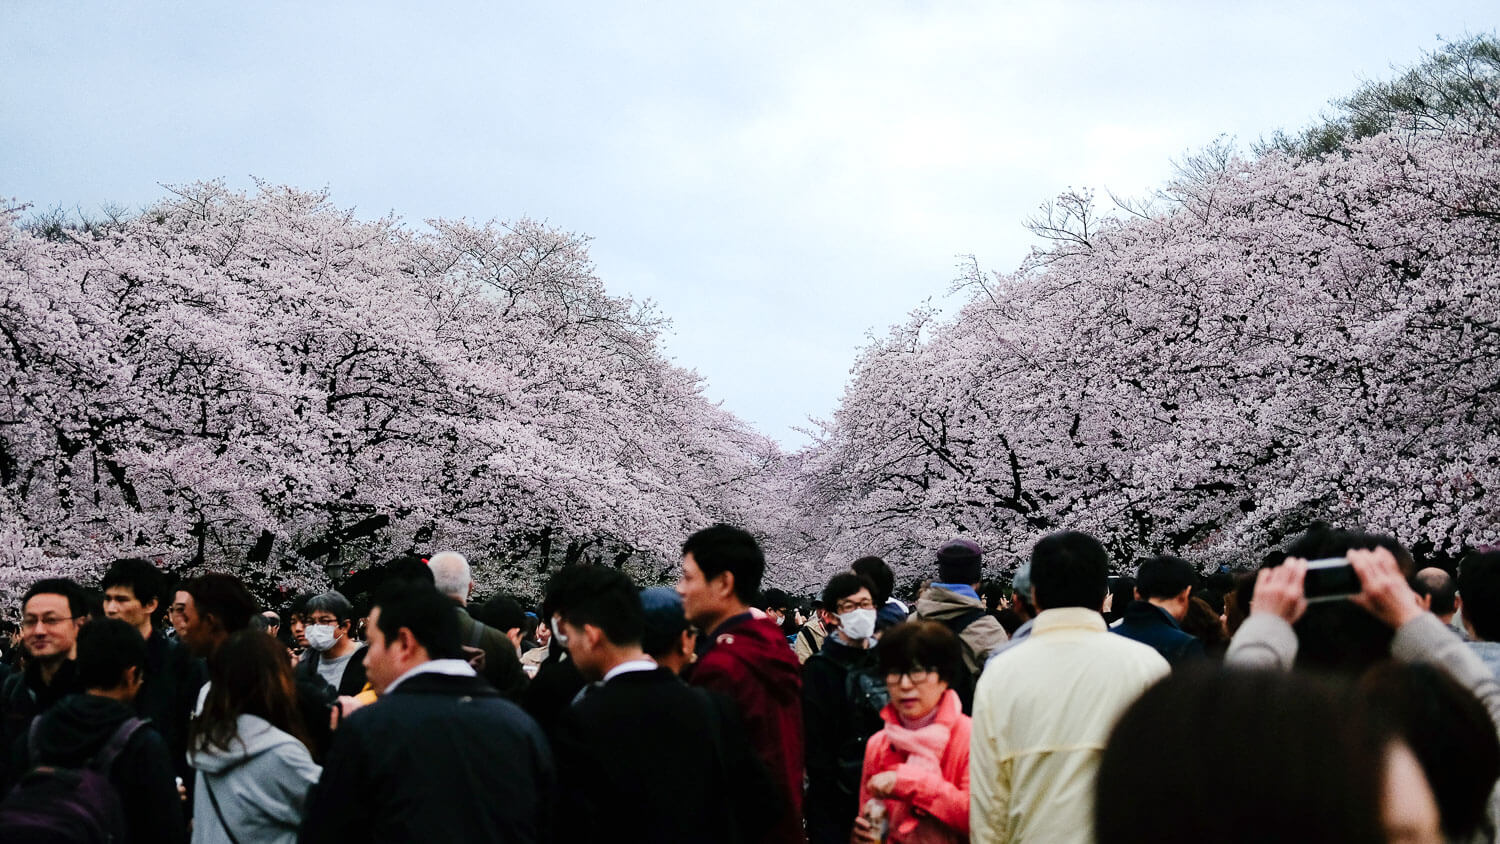 "Cherry blossom crowds in Ueno Park, Tokyo. Travel photography and guide by © Natasha Lequepeys for ""And Then I Met Yoko"". #japan #japanitinerary #travelblog #fujifilm #asia"